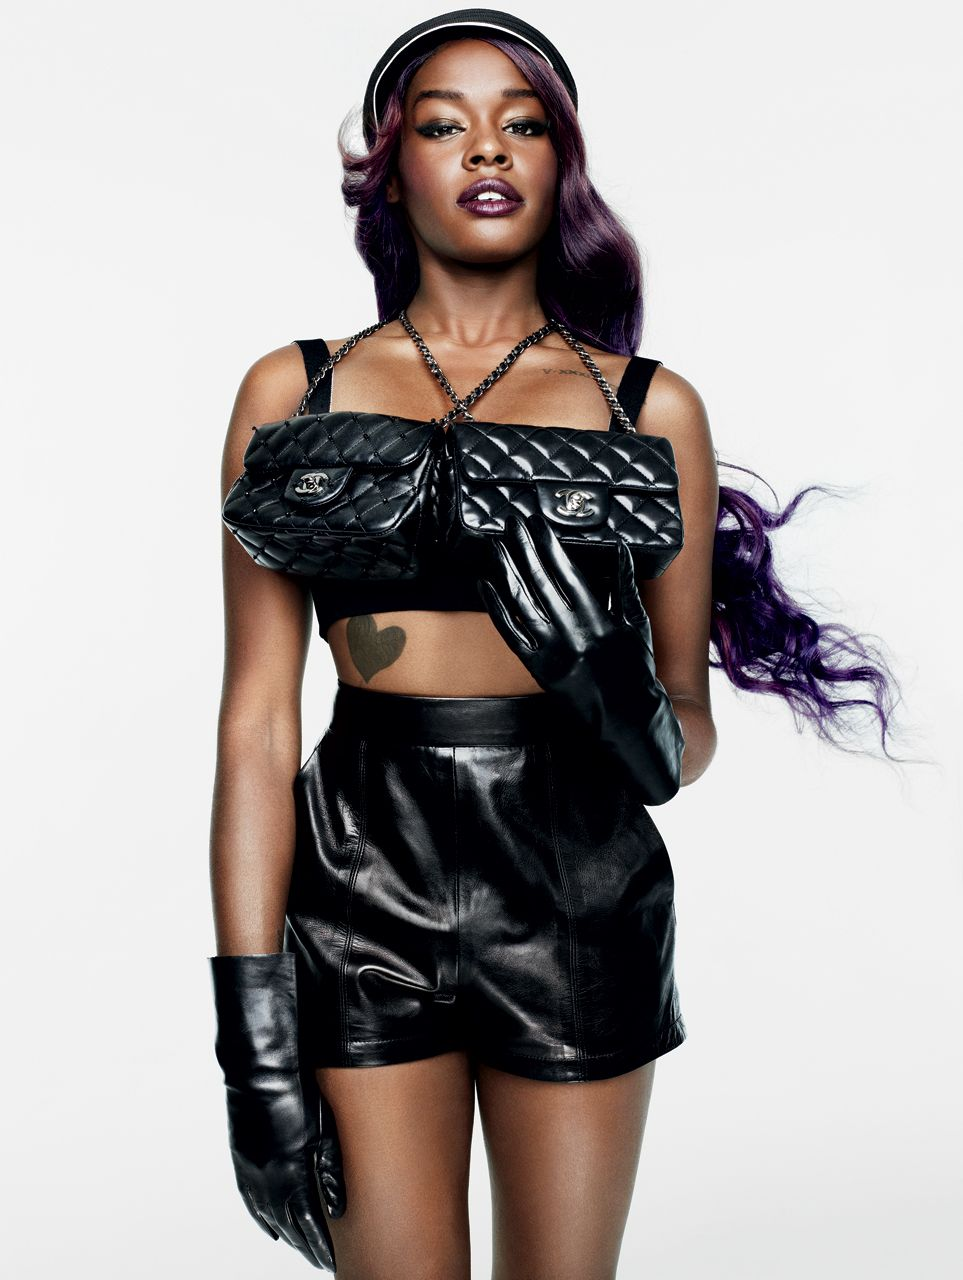 azealia banks - photo #25